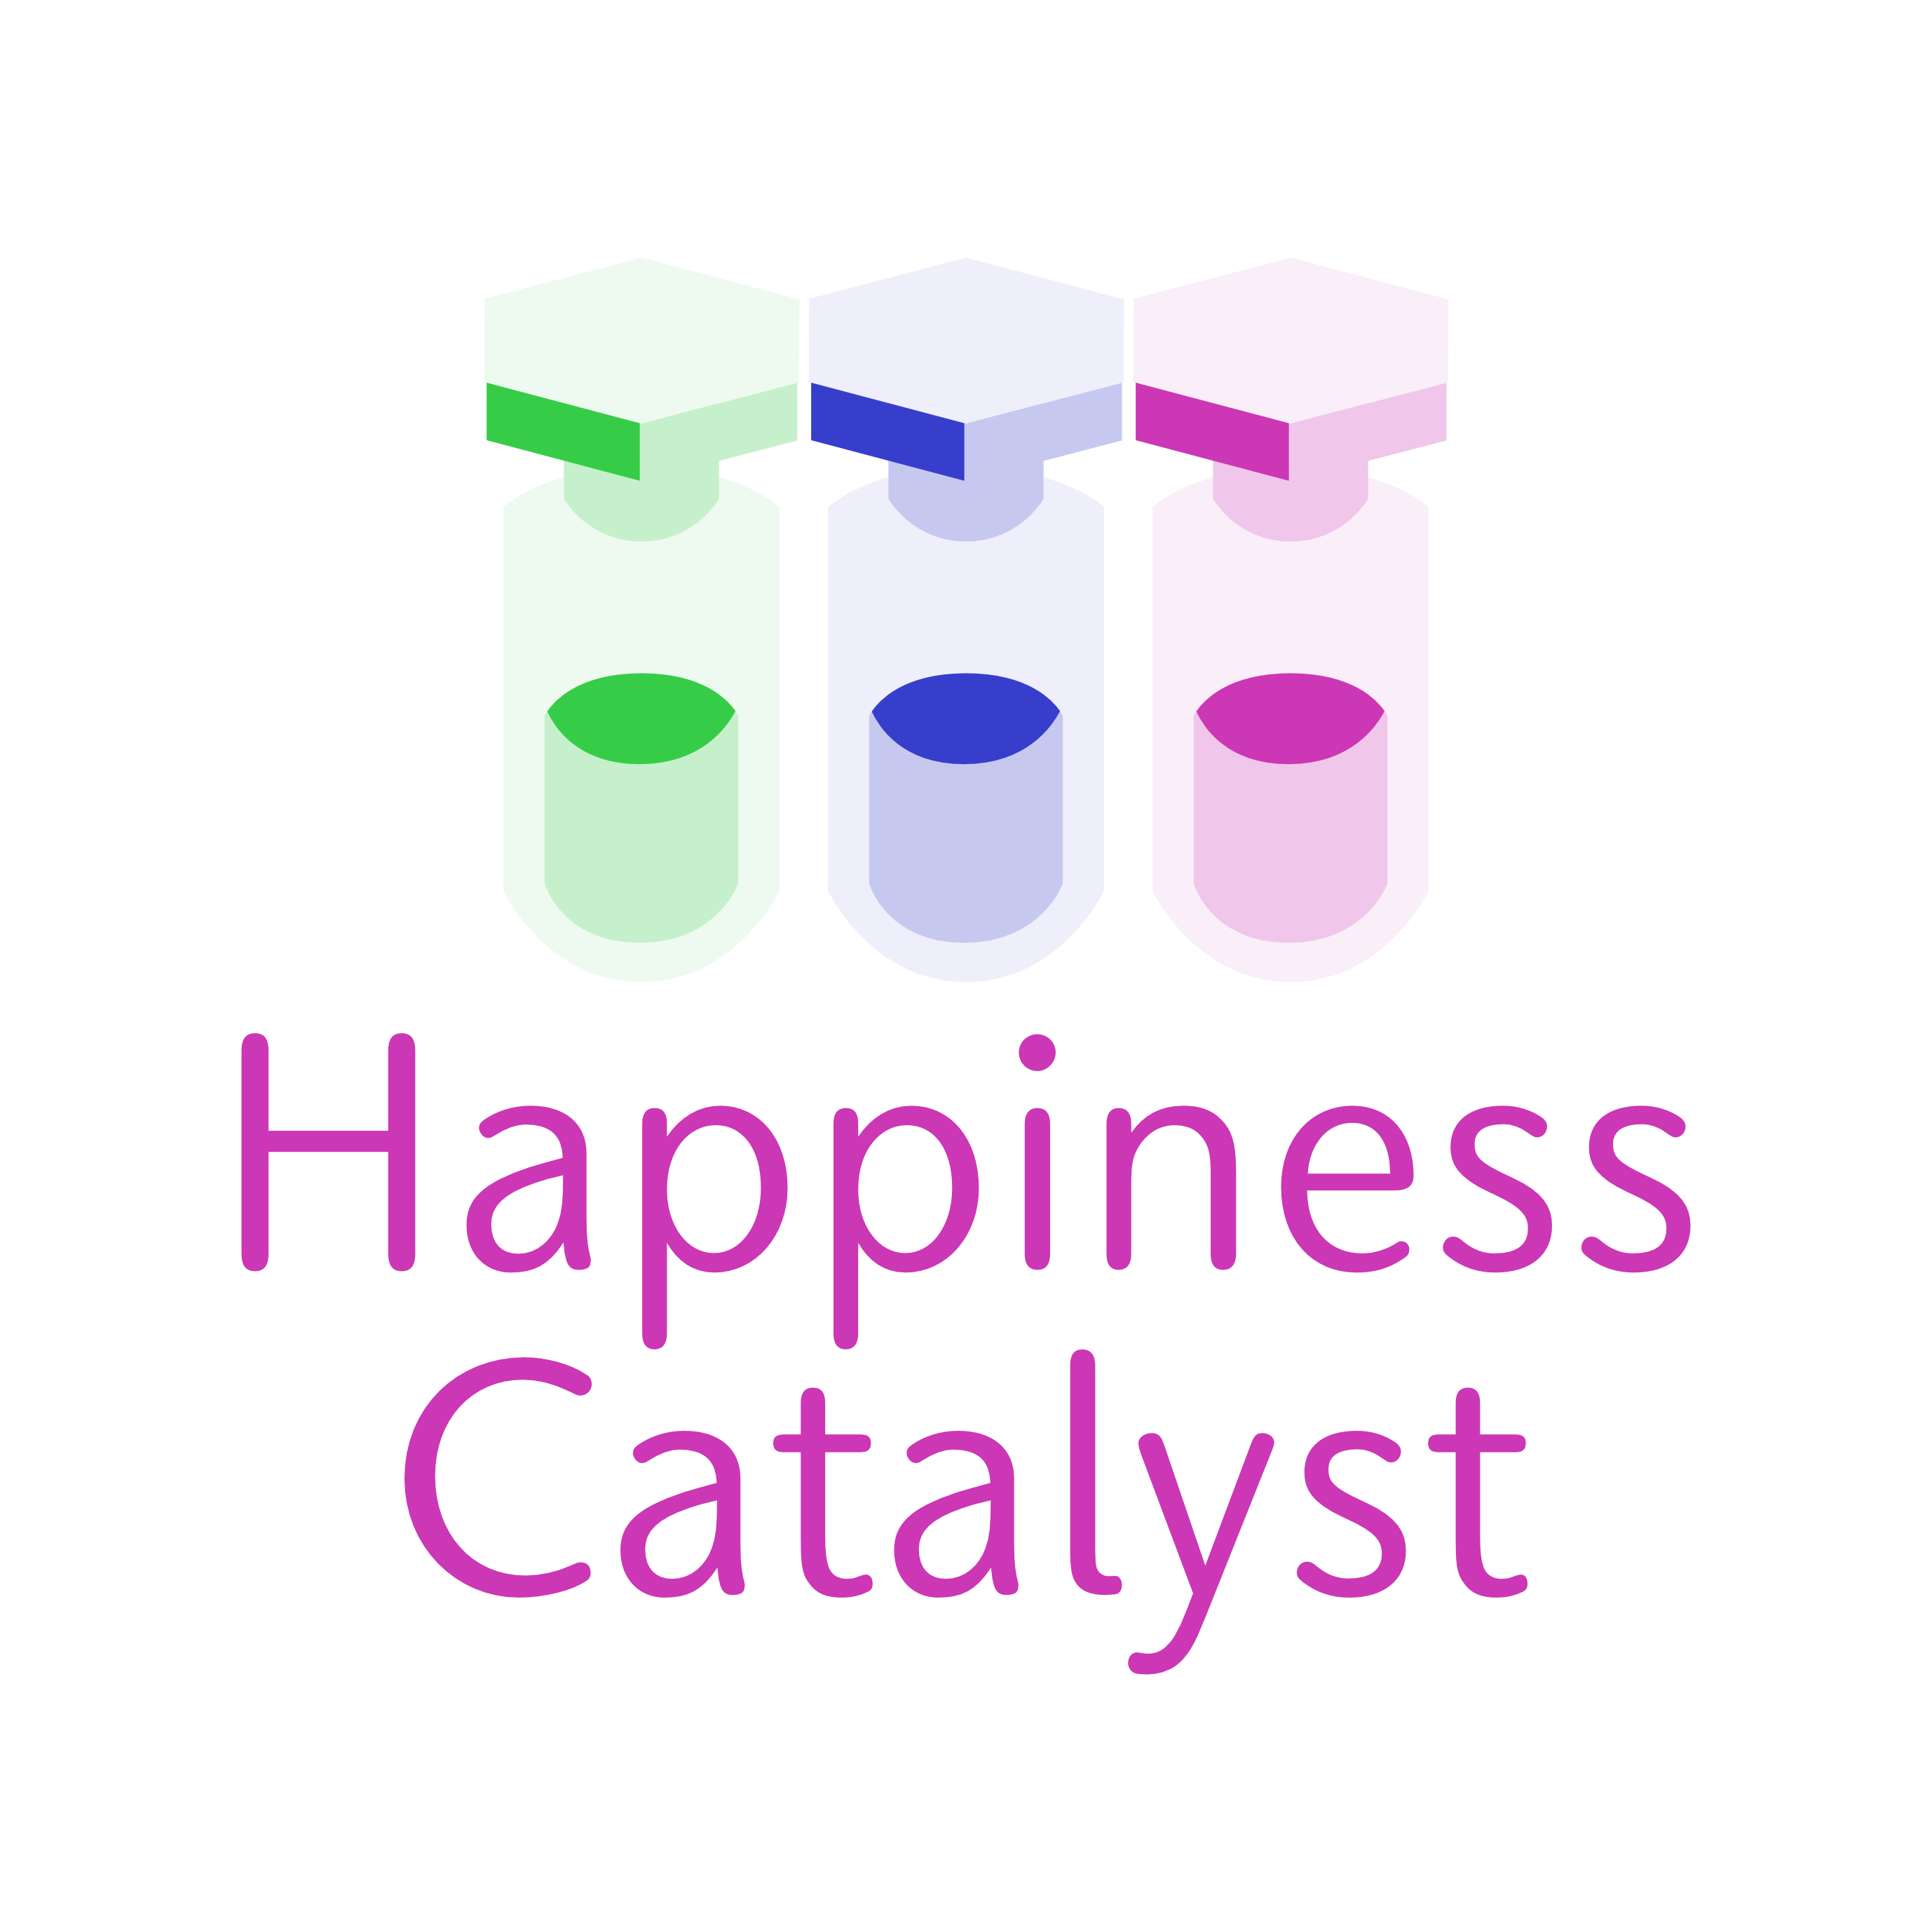 Happiness Catalyst